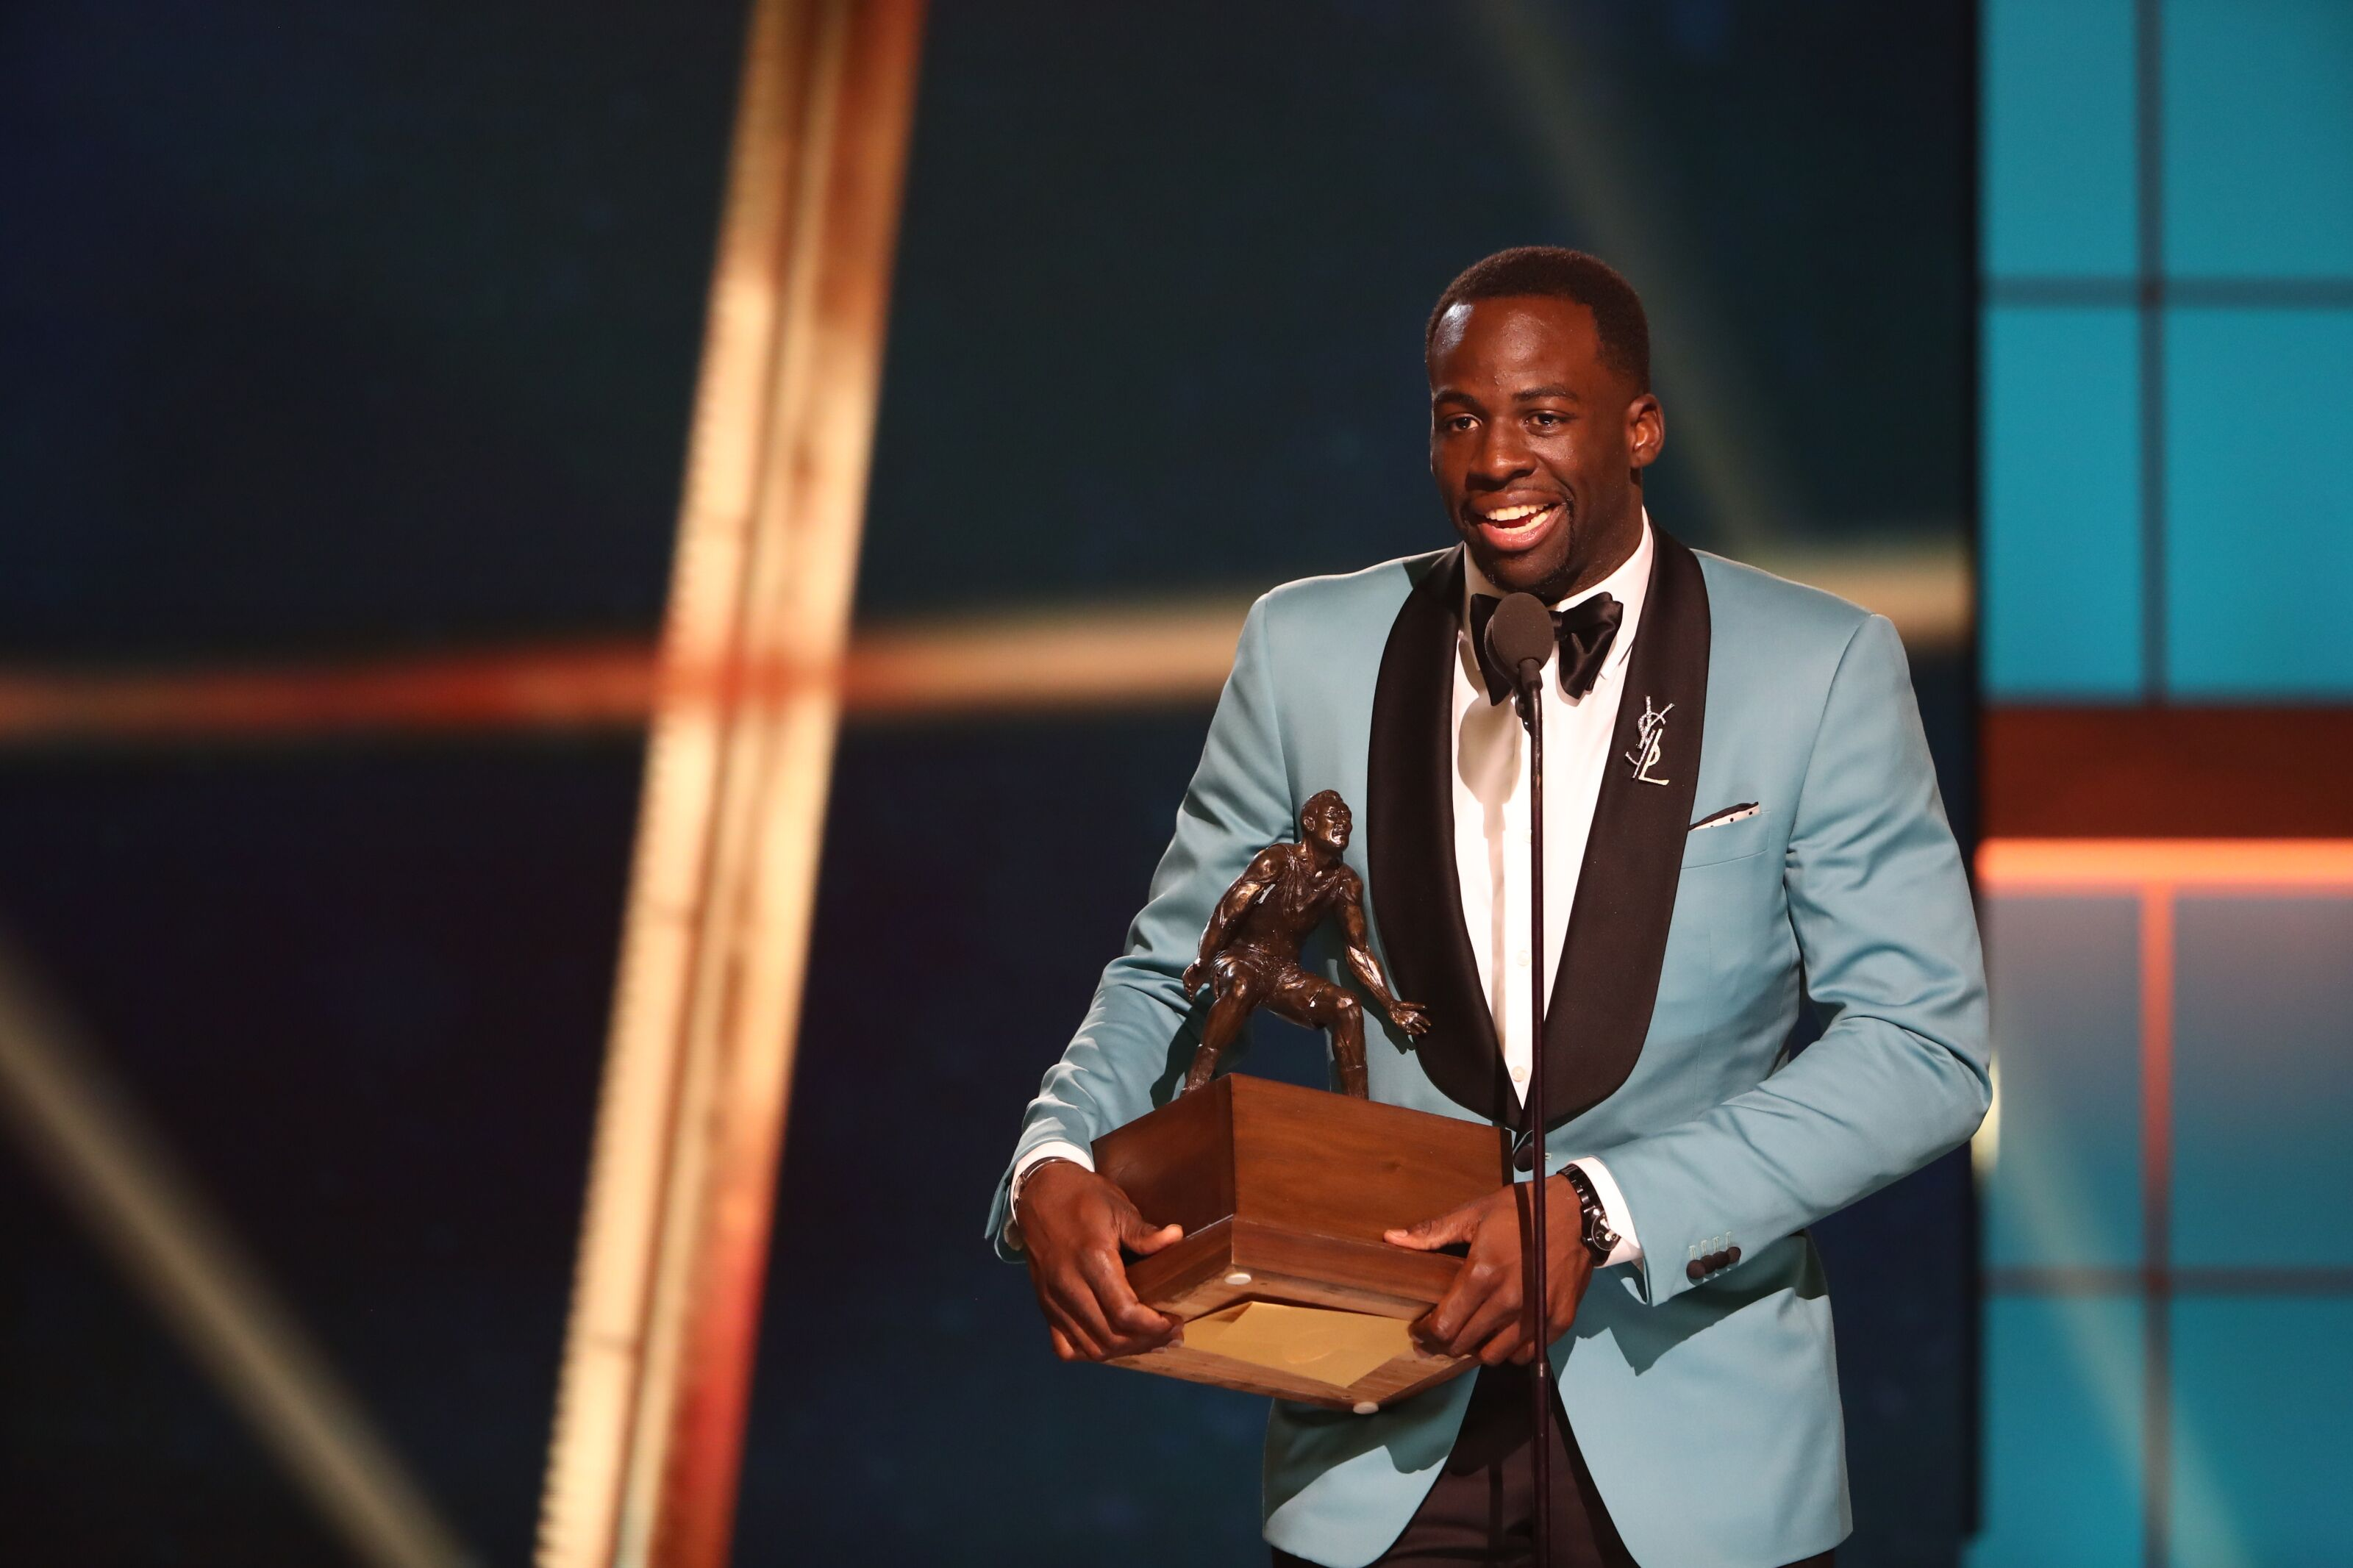 Golden State Warriors: Draymond Green doesn't expect to play into 40's